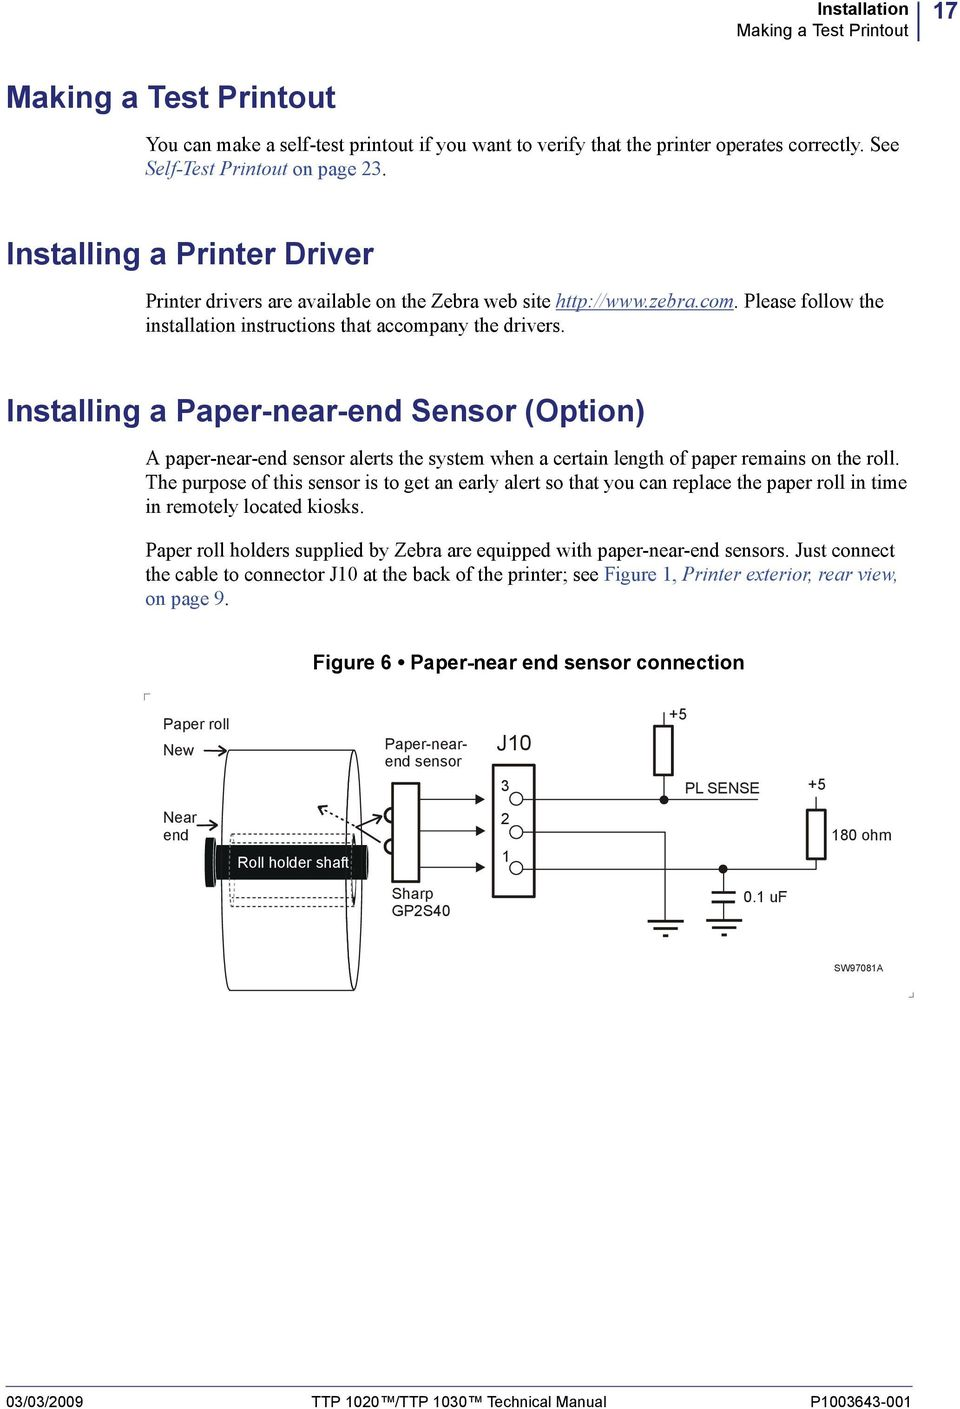 Installing a Paper-near-end Sensor (Option) A paper-near-end sensor alerts the system when a certain length of paper remains on the roll.